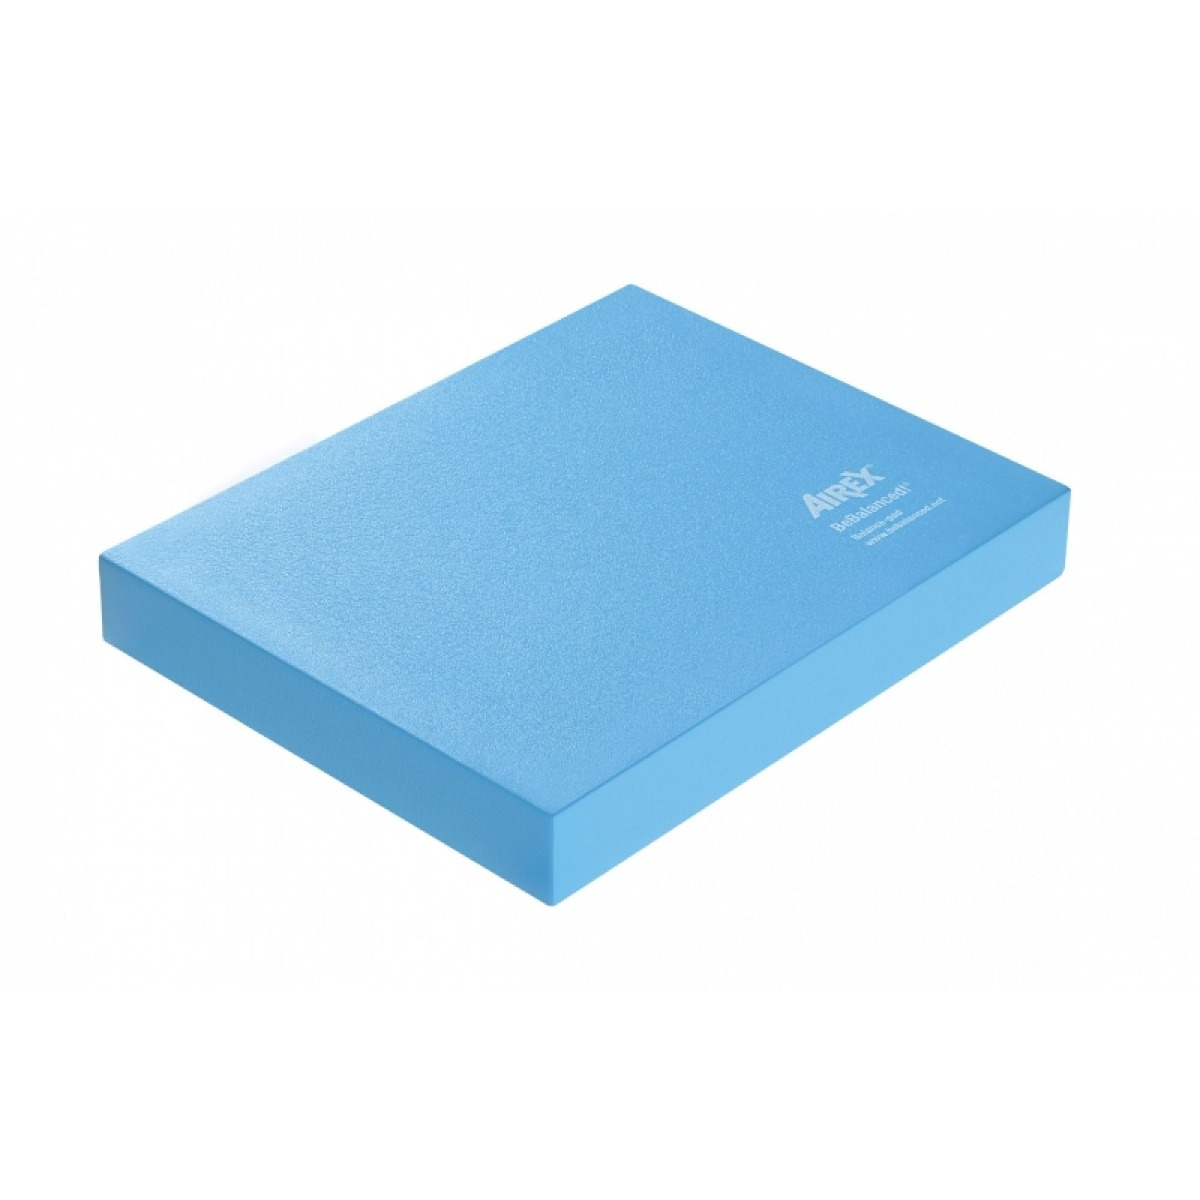 Blue balance pad by AIREX